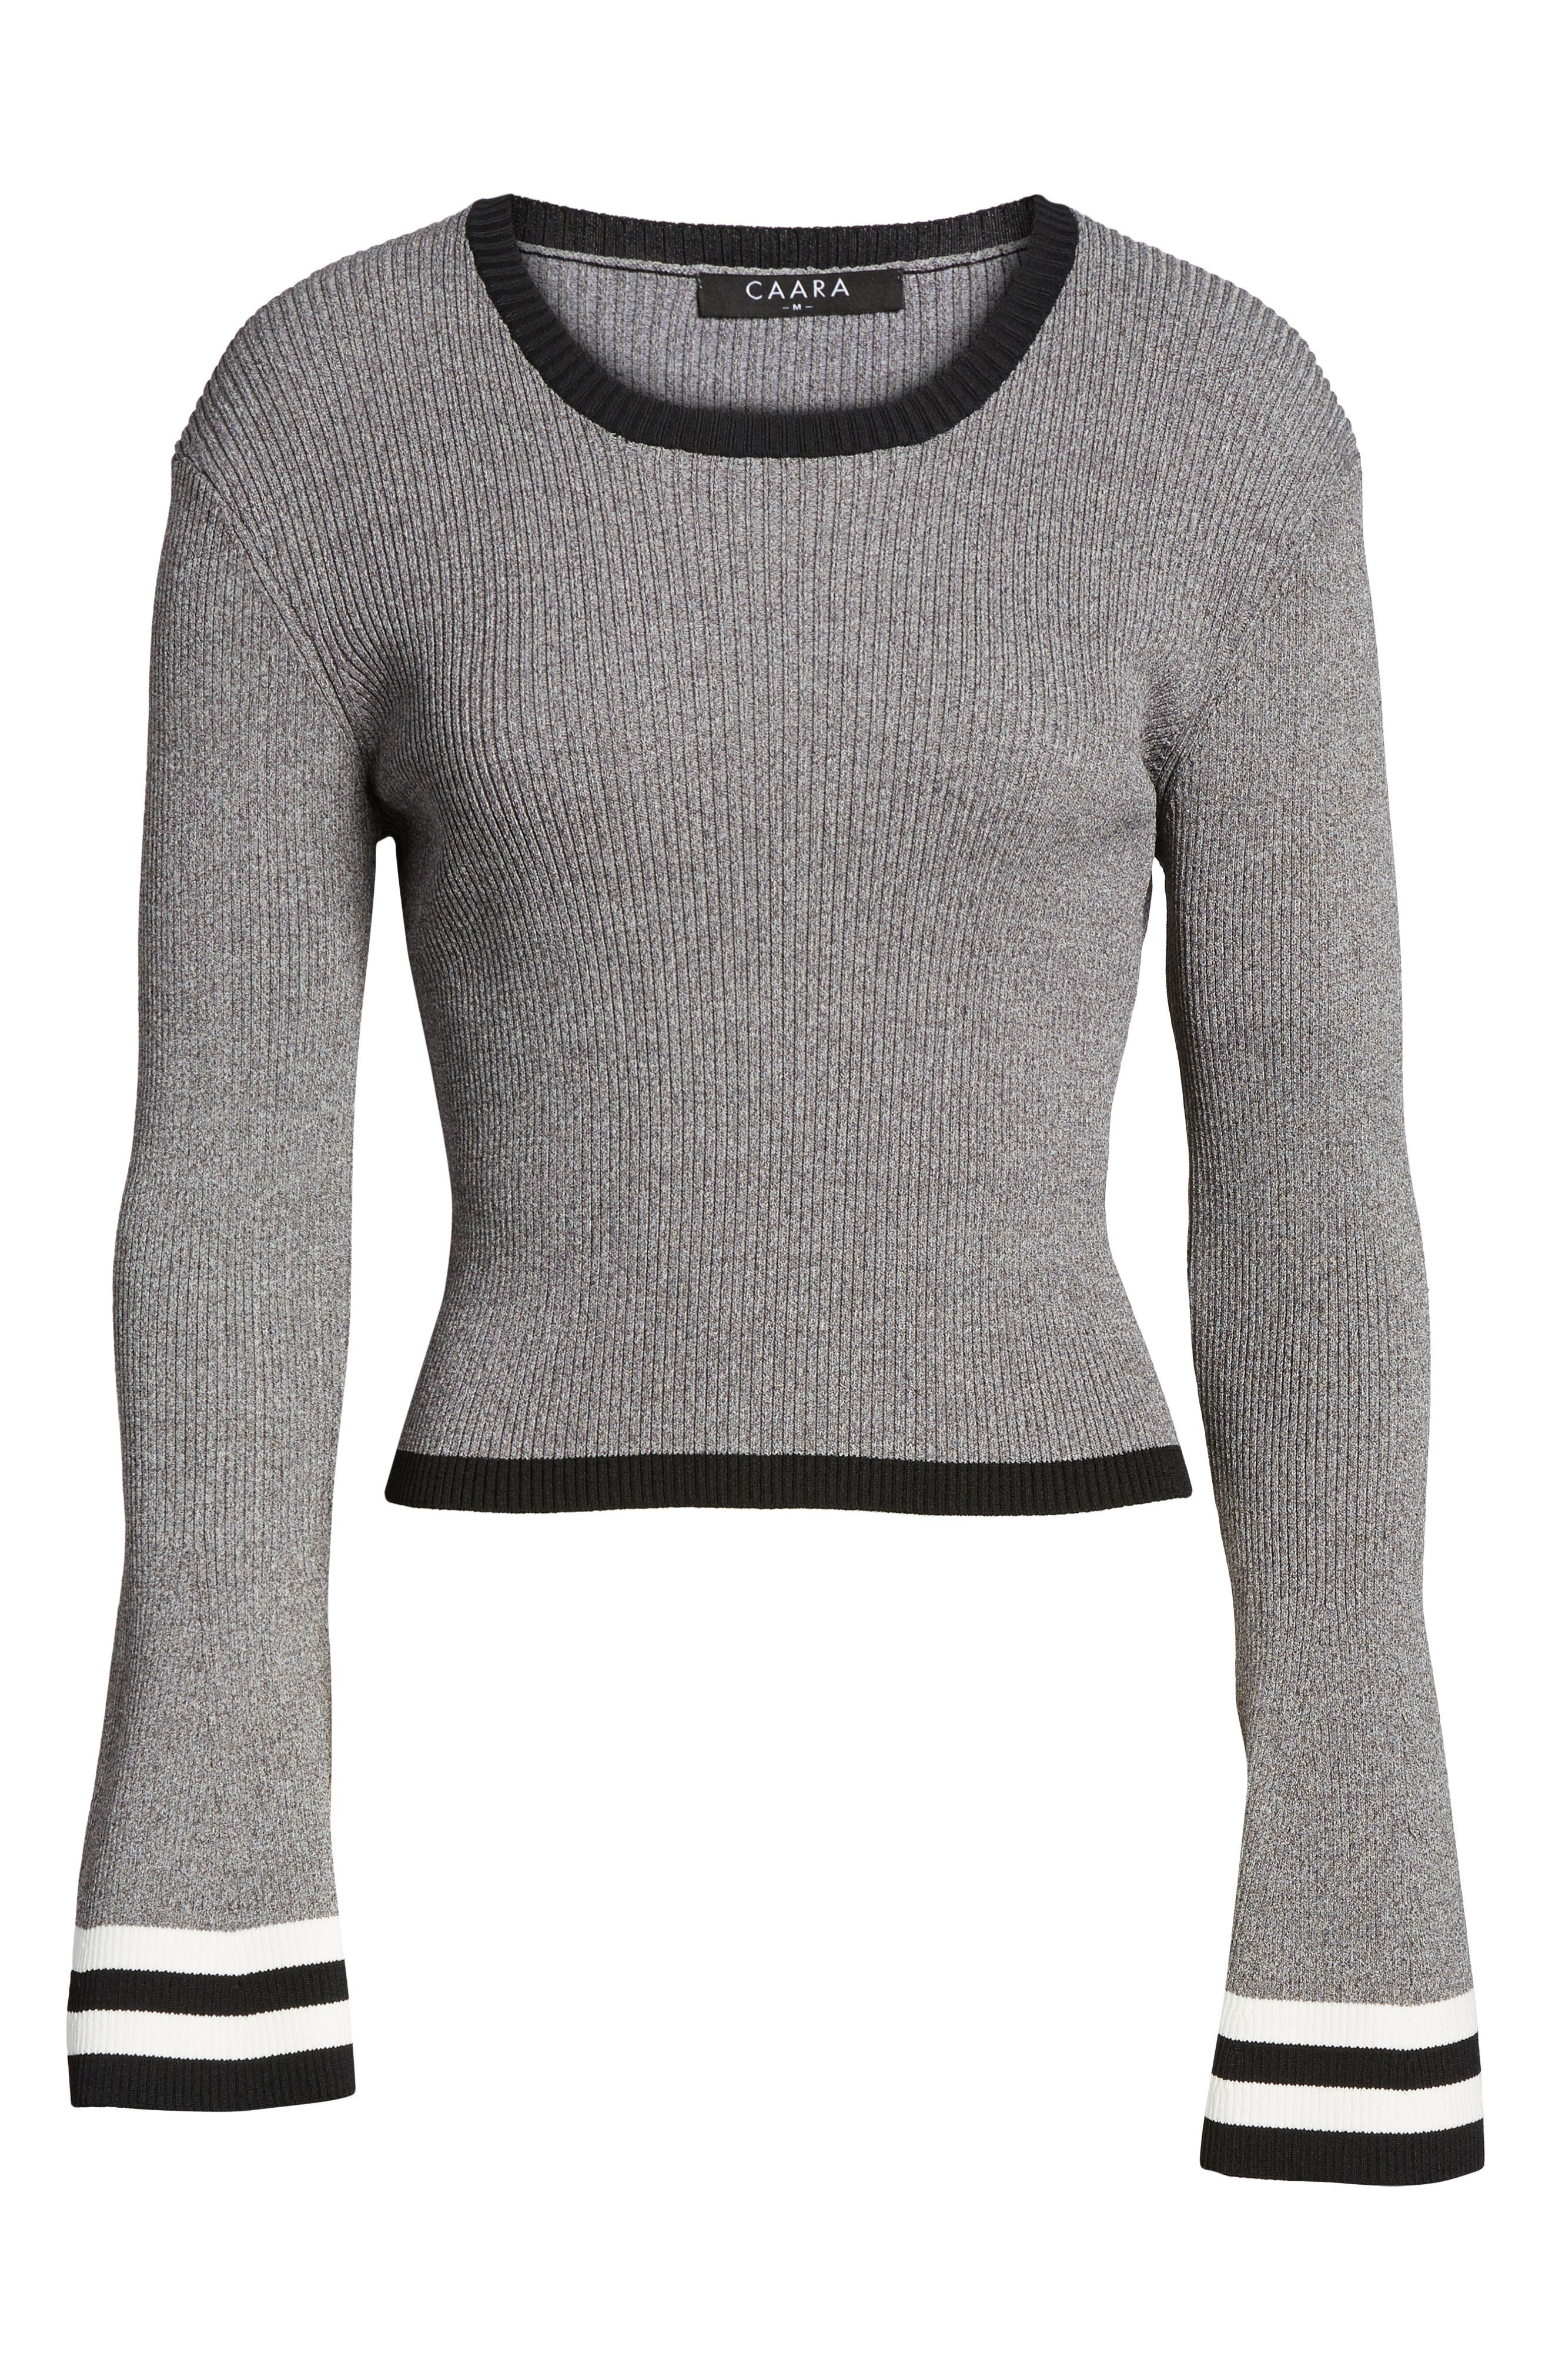 Bell Sleeve Crop Sweater,                             Alternate thumbnail 6, color,                             Grey